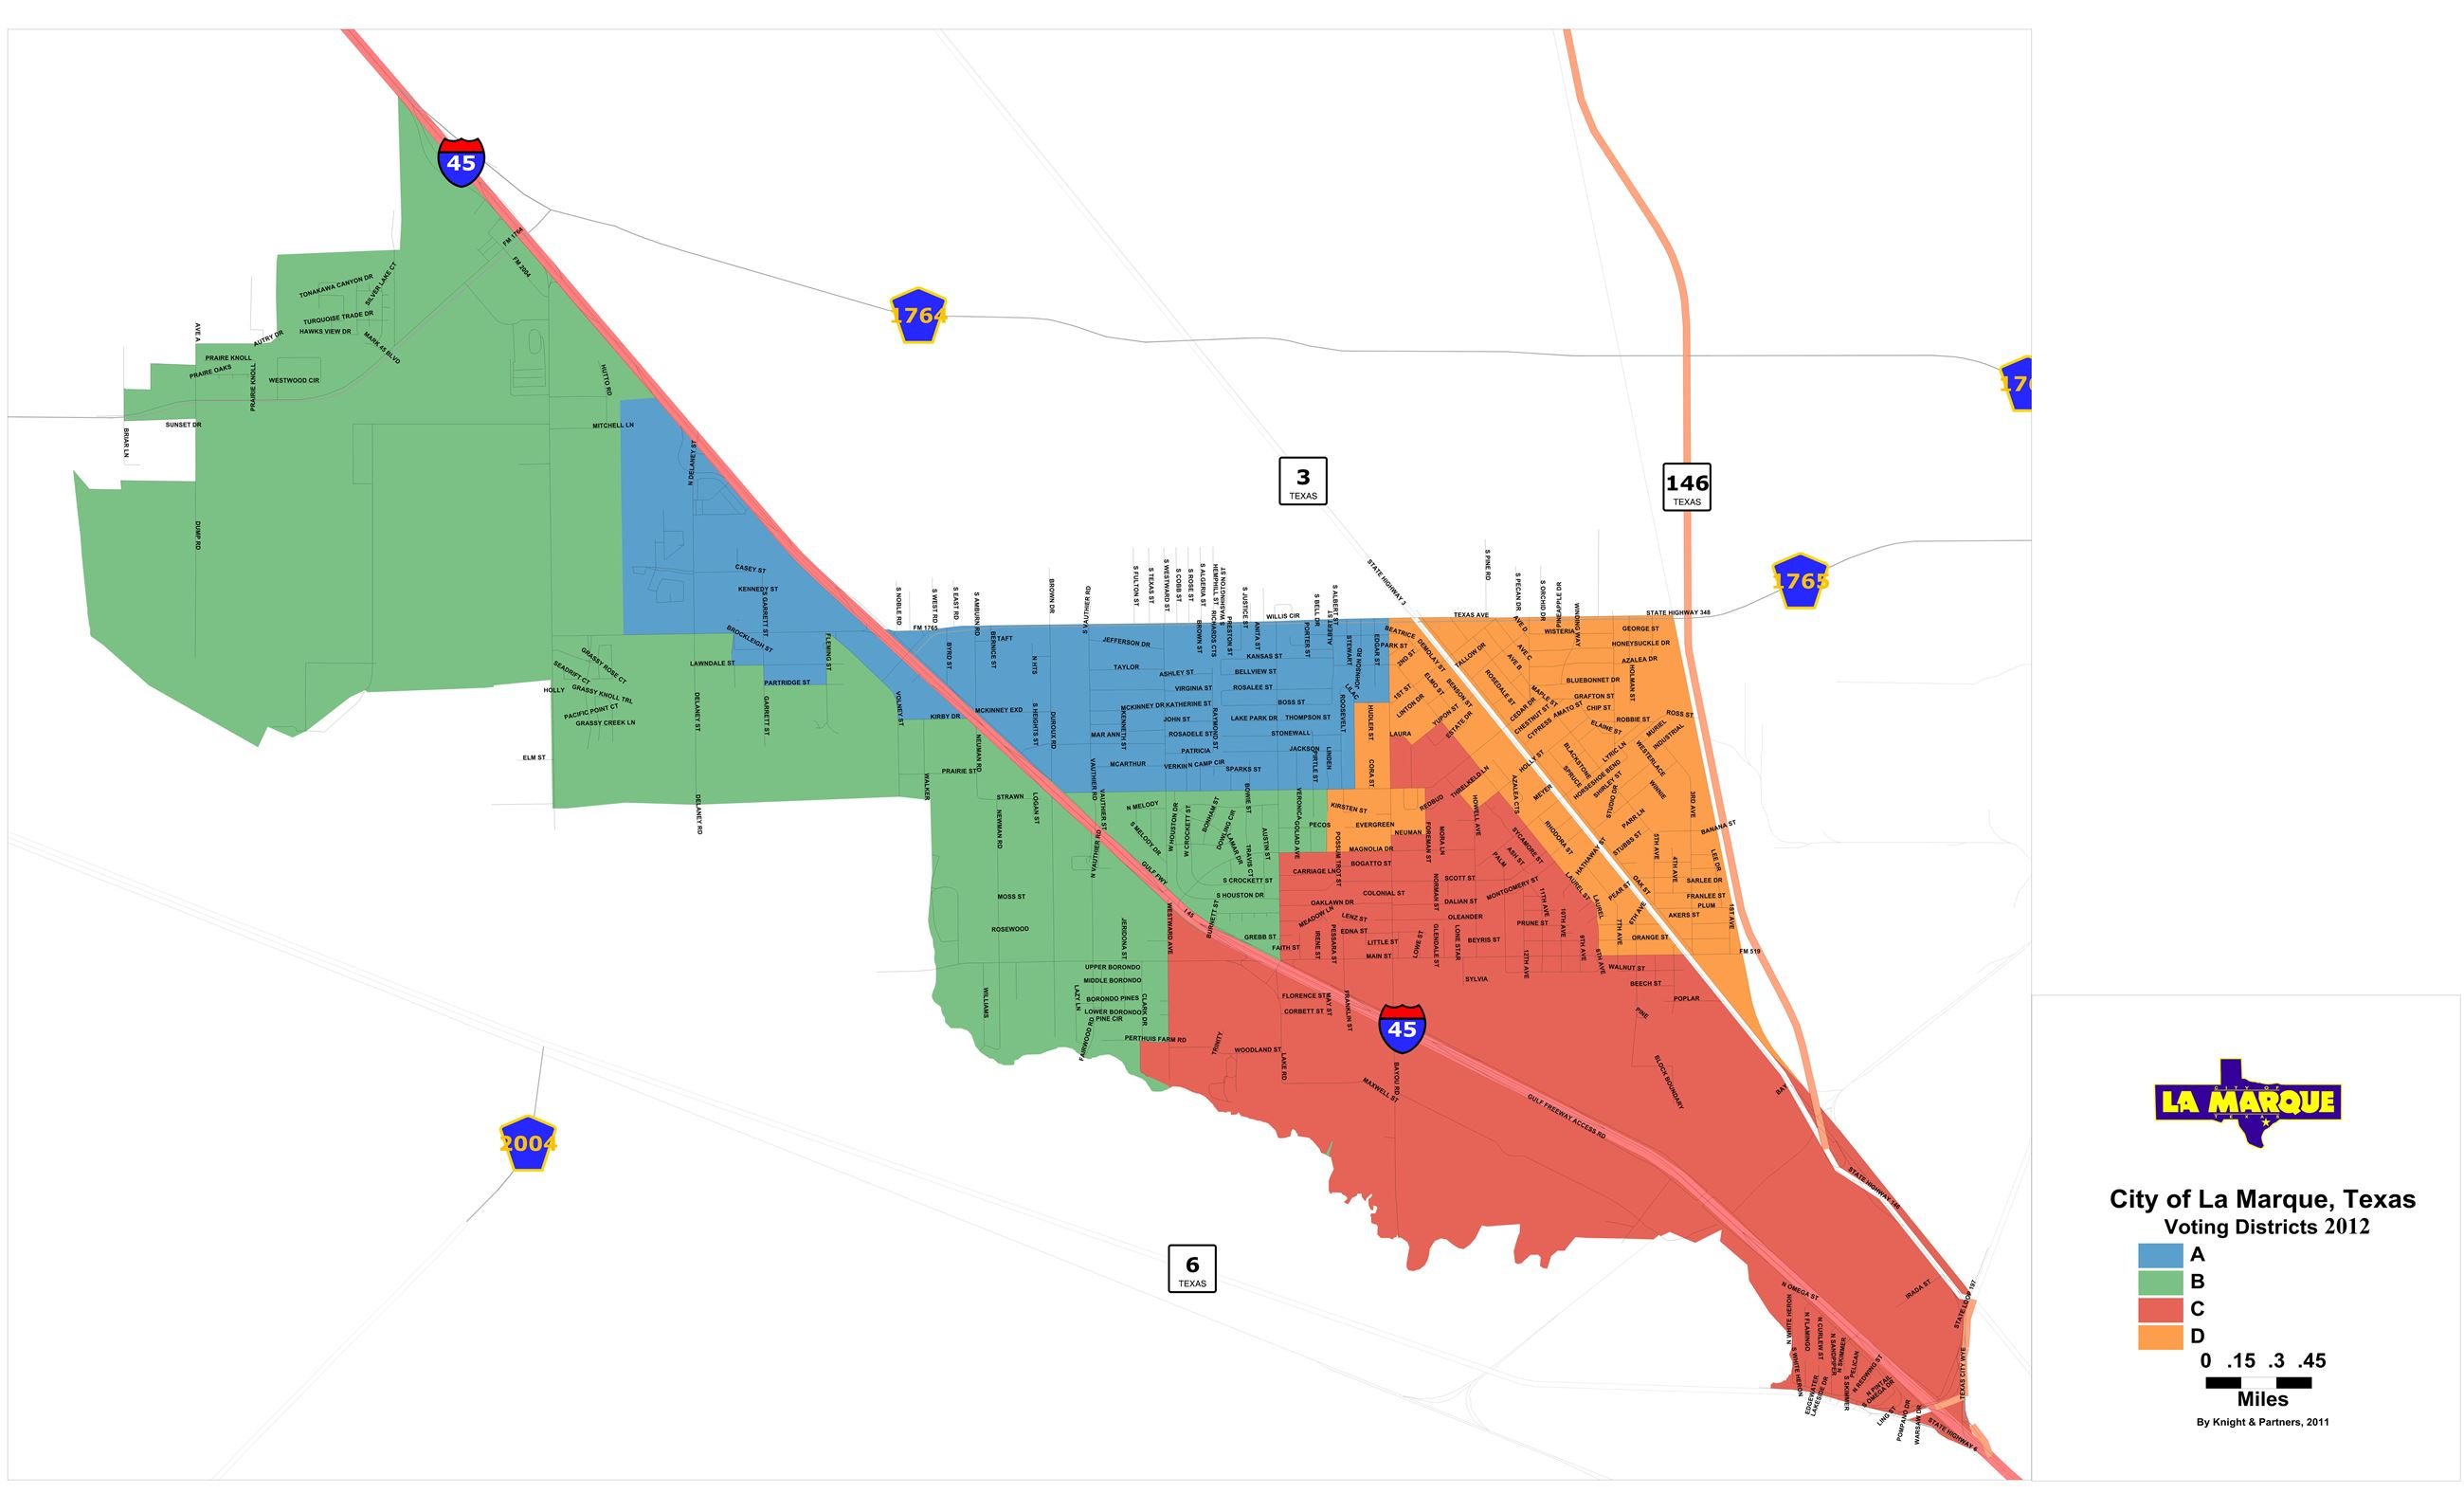 La Marque City Council Voting District Map